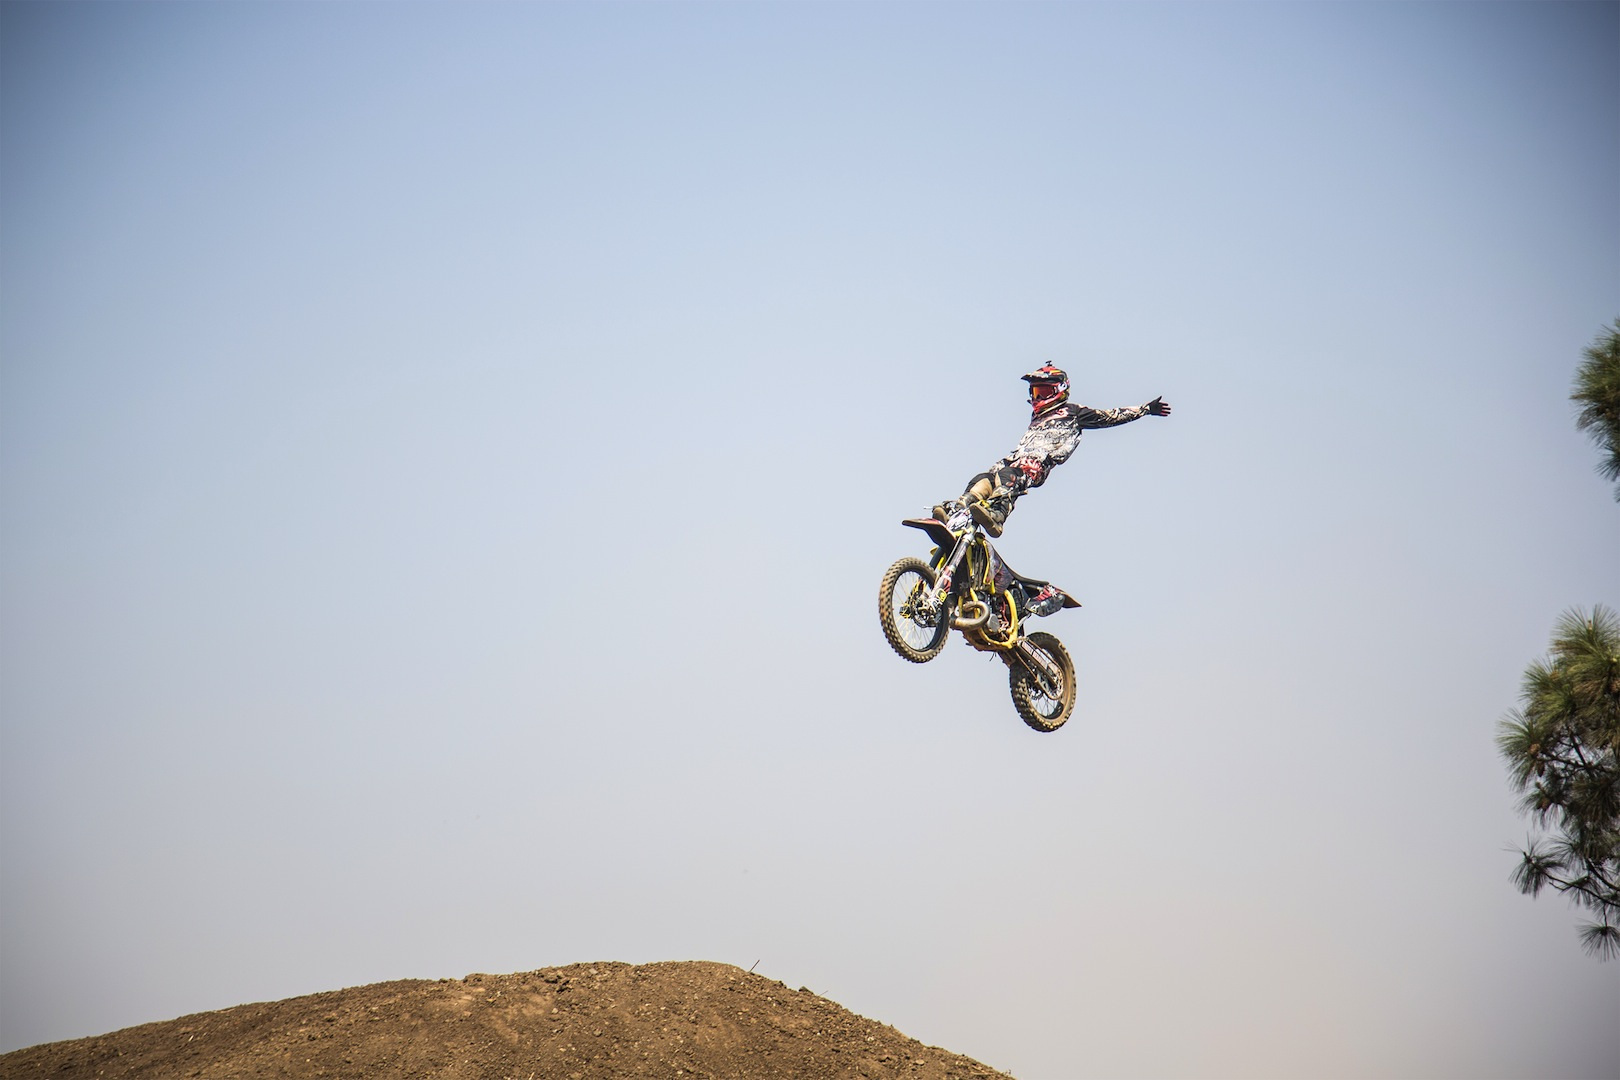 Round 3 of the FMX Development Series is in the books